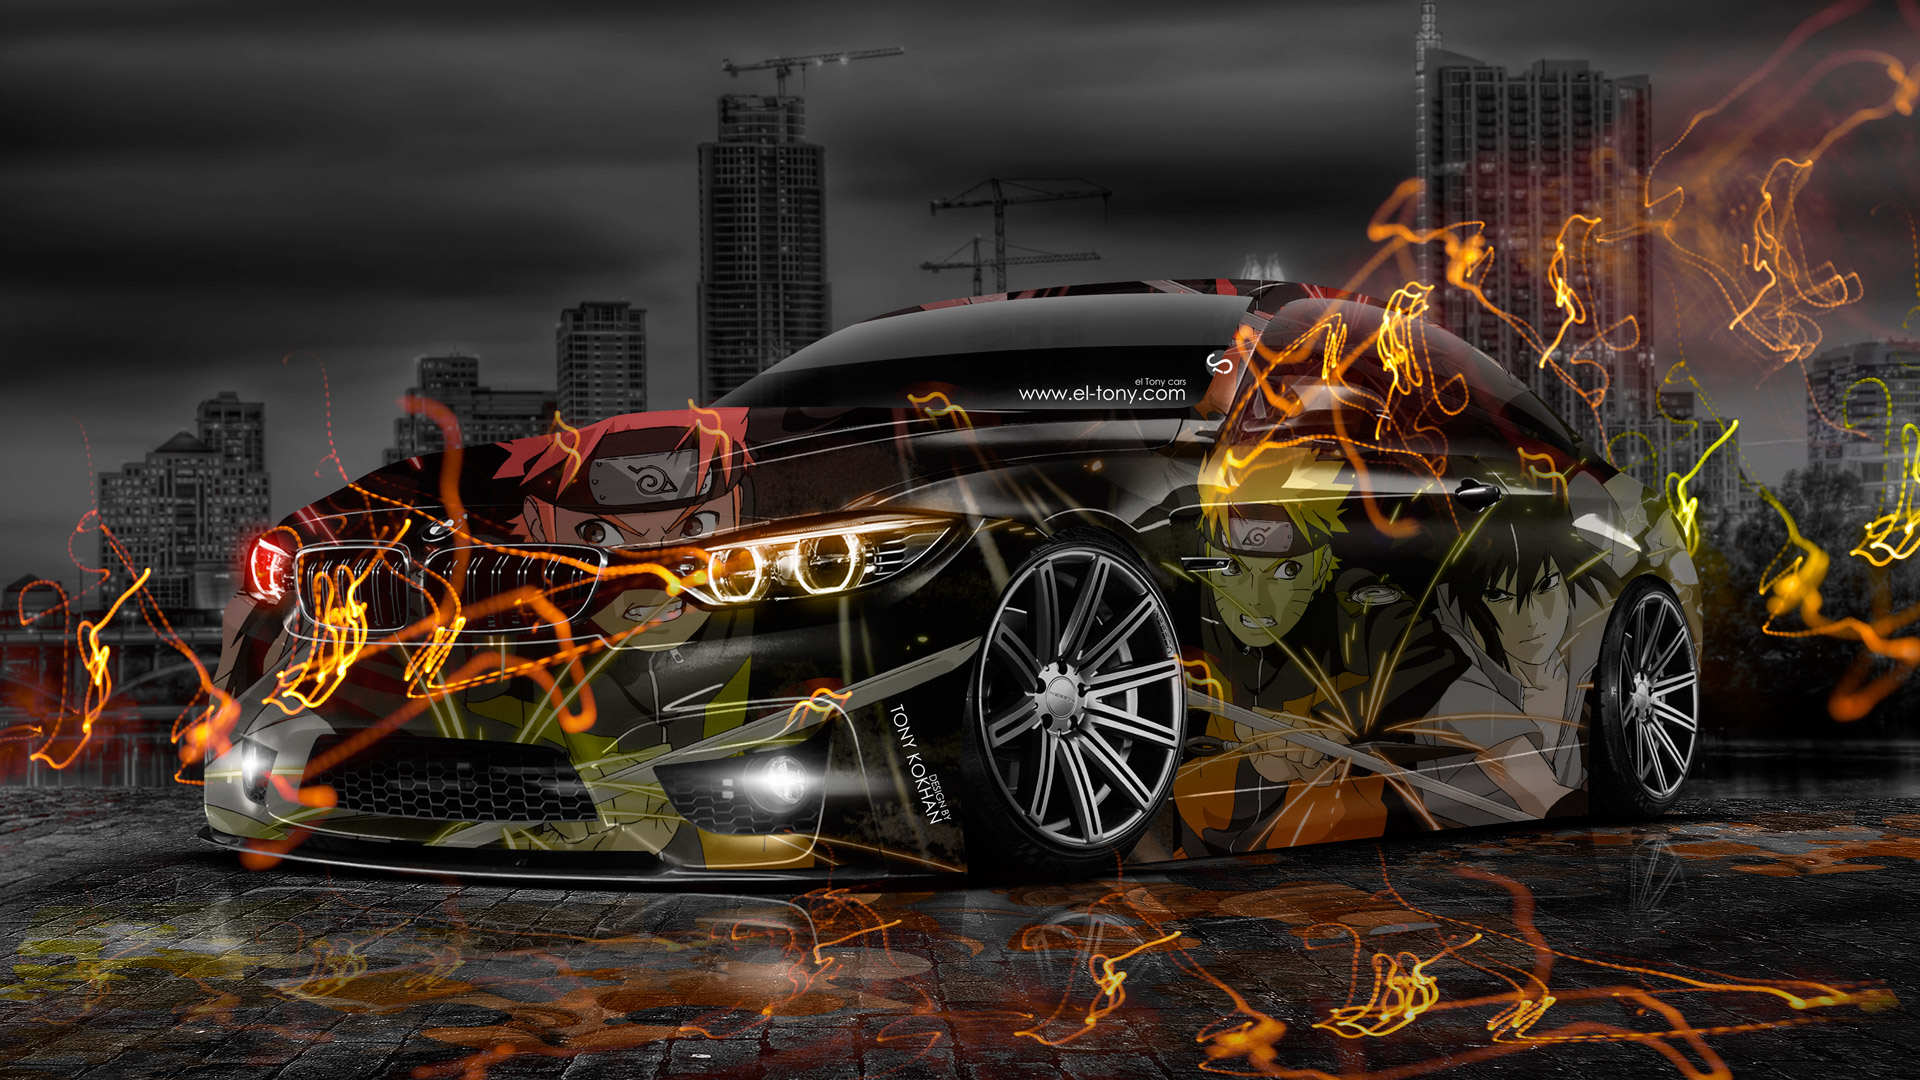 Car Manipulation Wallpapers Smokee Bmw M4 Anime Aerography Naruto City Car 2014 El Tony